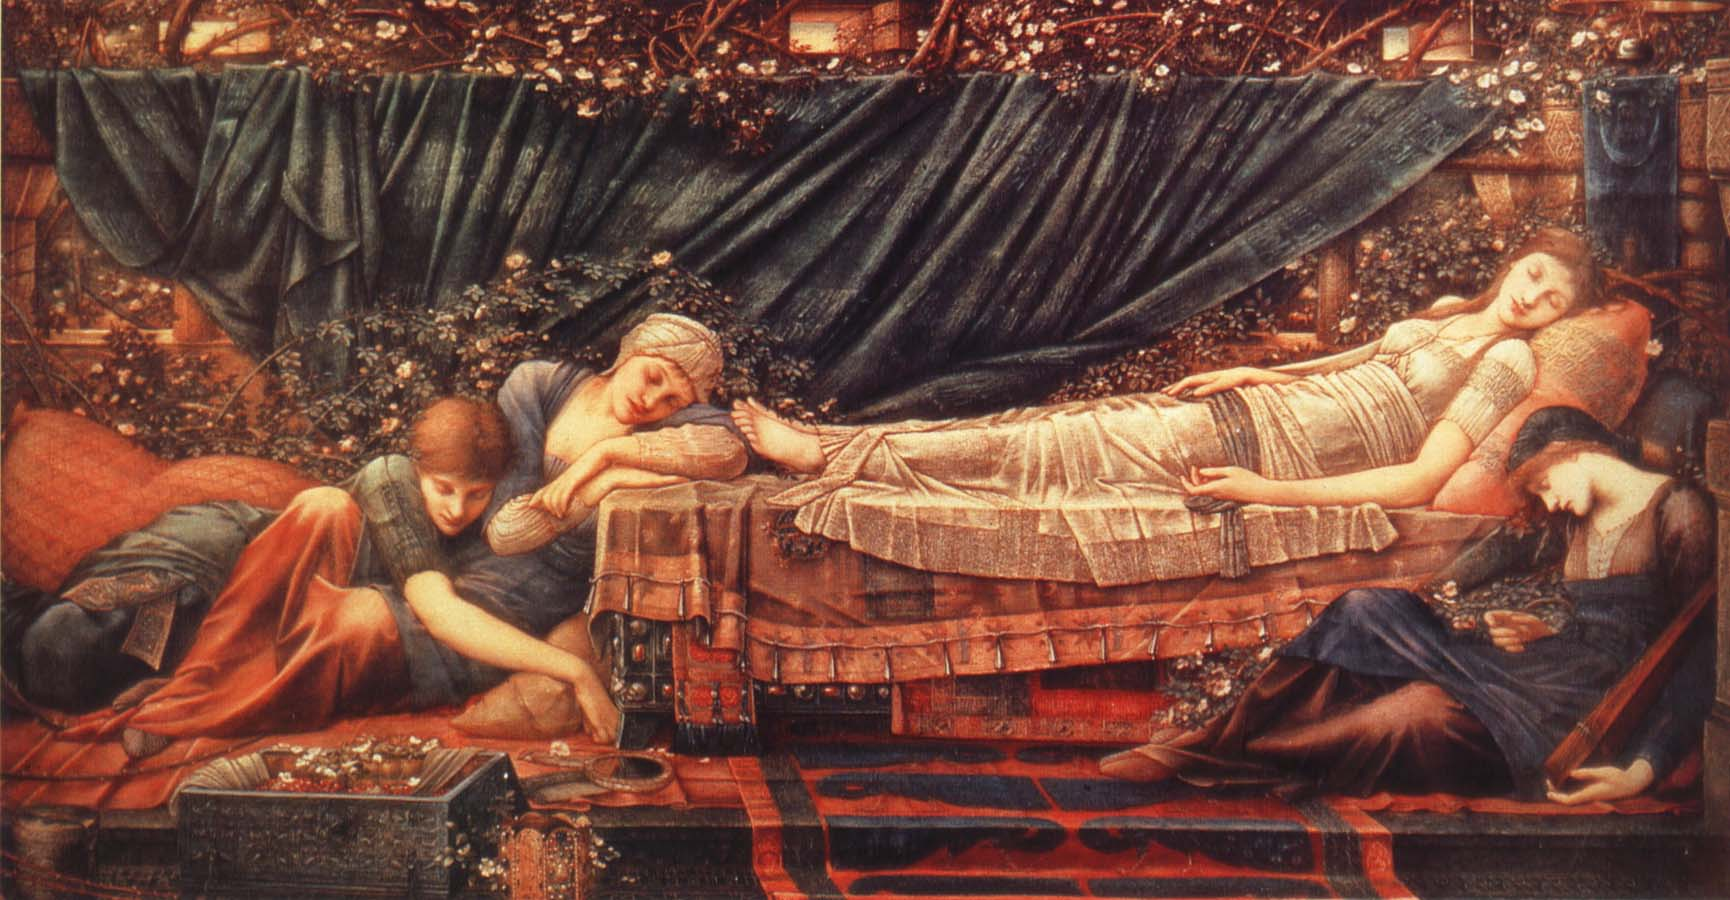 Burne-Jones, Sir Edward Coley Sleeping Beauty